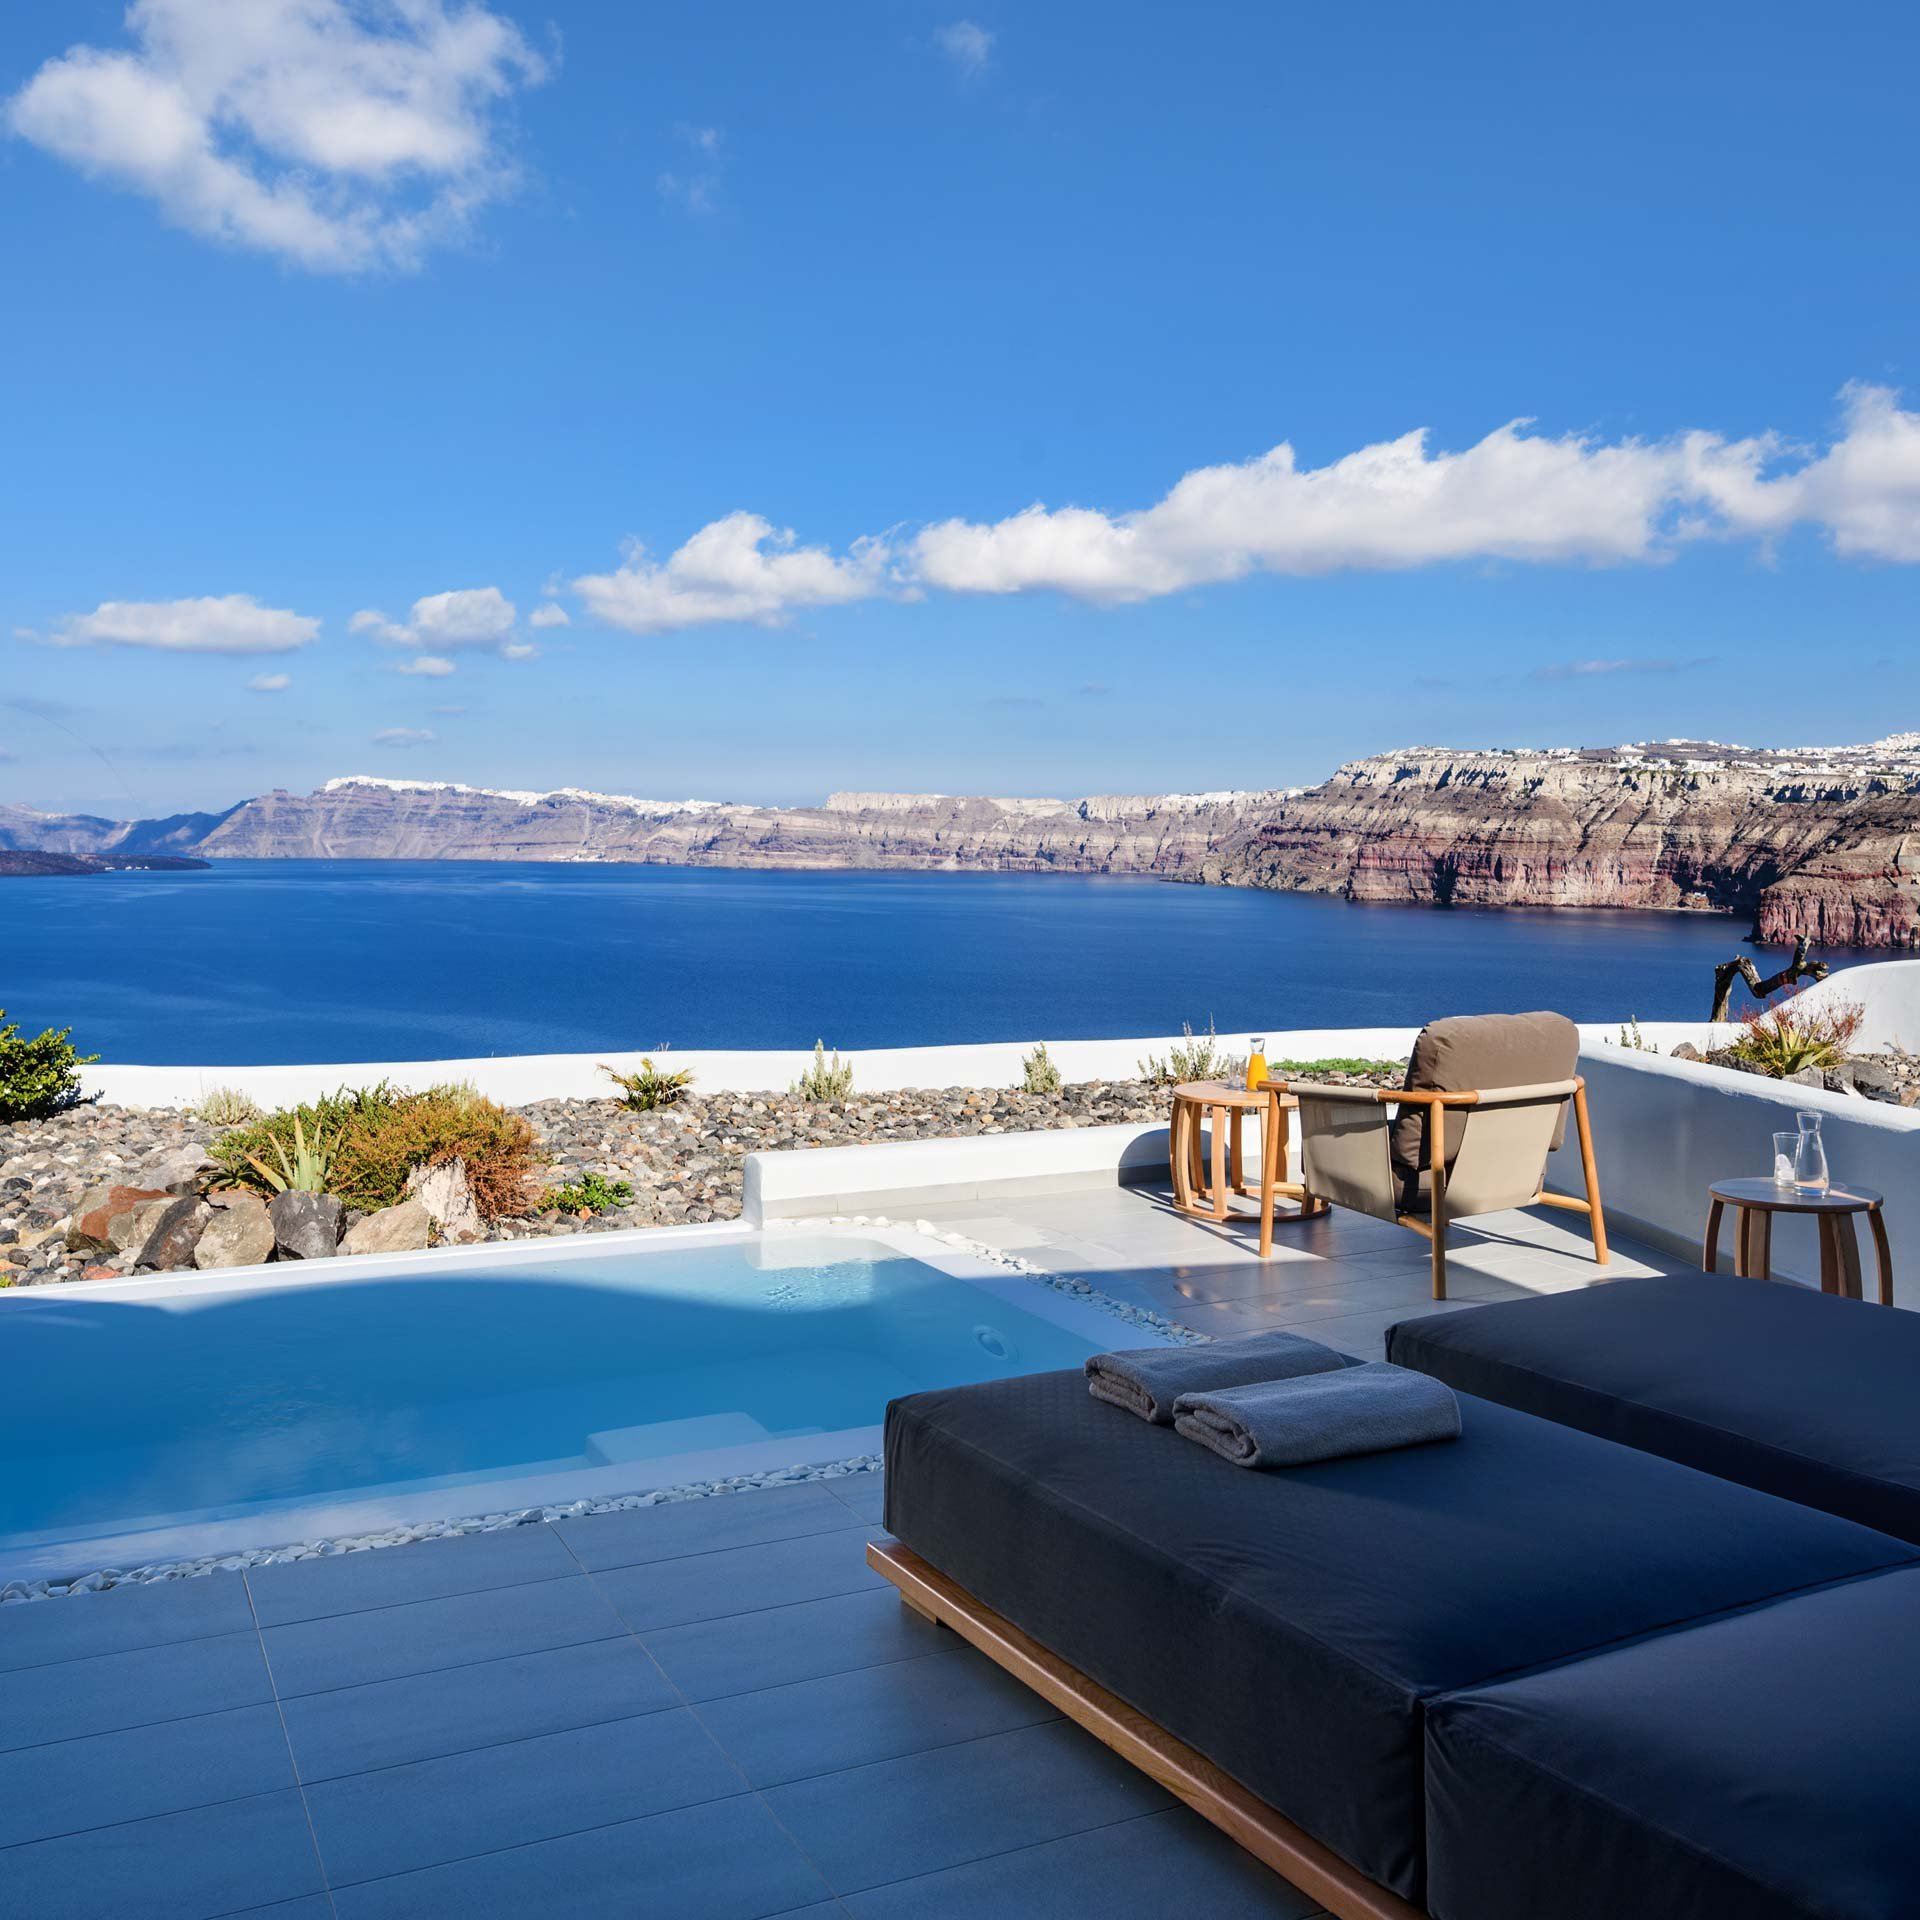 Deluxe Spa Suite - Private pool with Caldera view